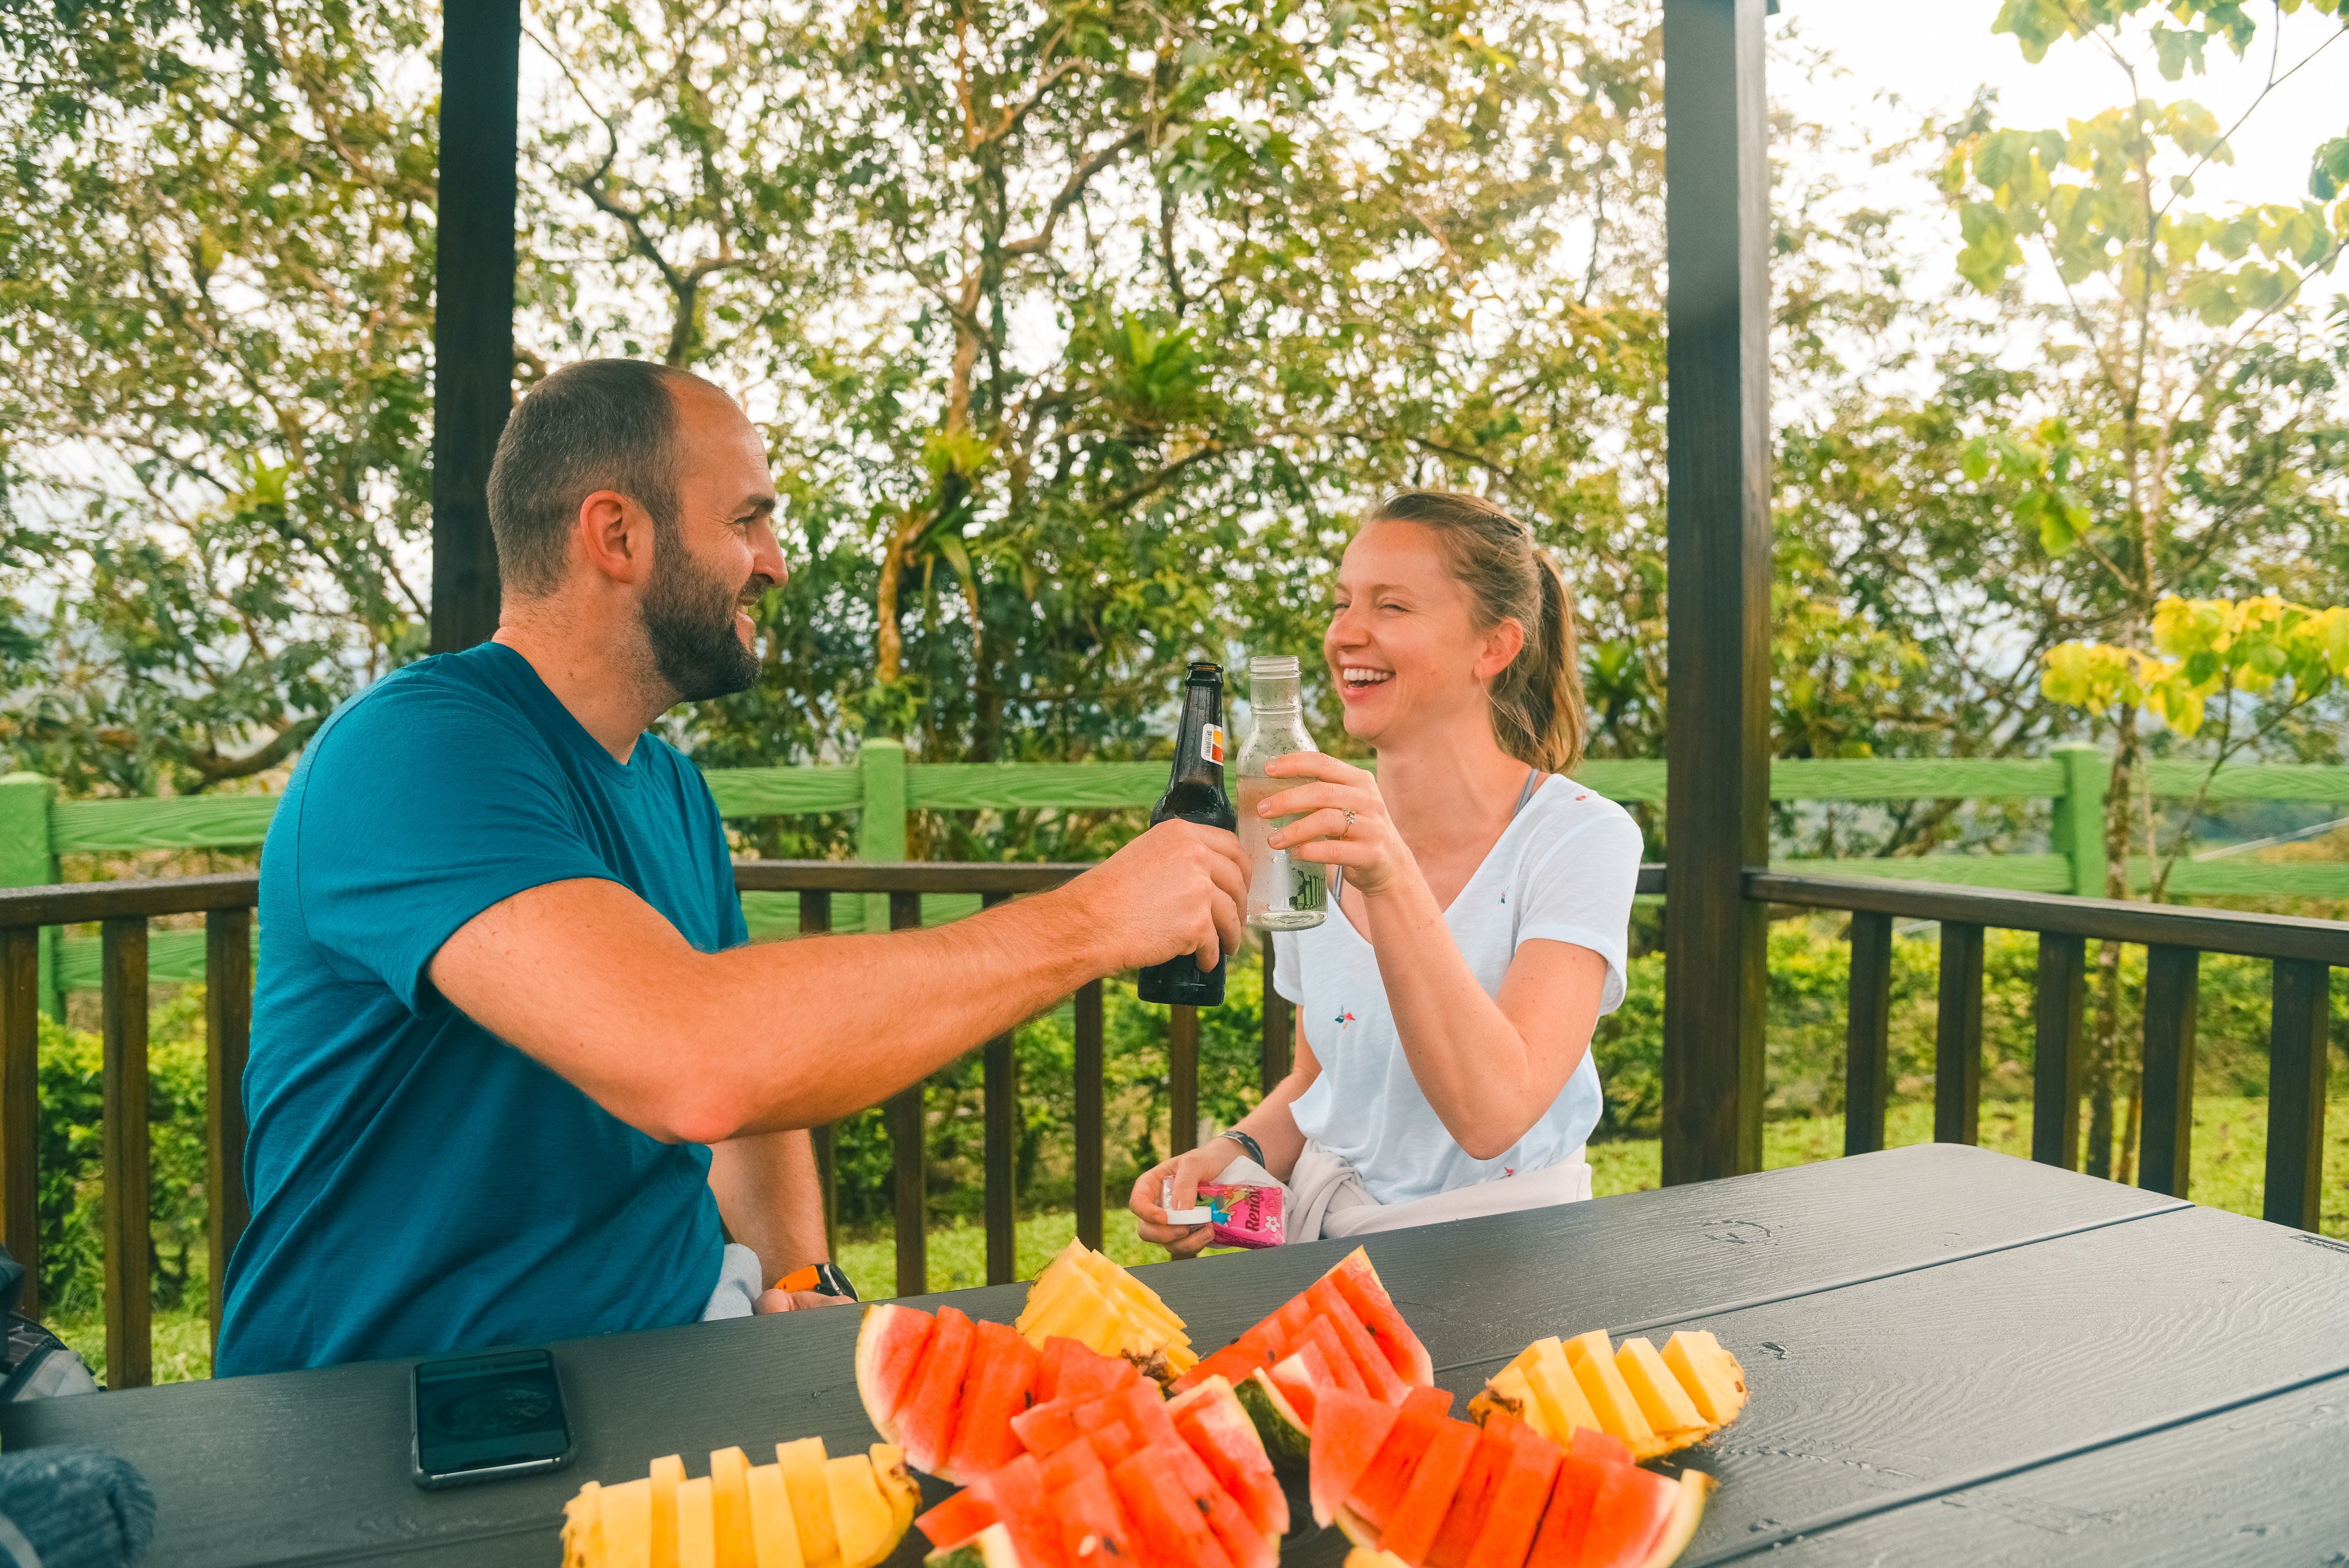 Have an exquisite tropical snack after an incredible hanging bridge walk in Arenal Volcano.